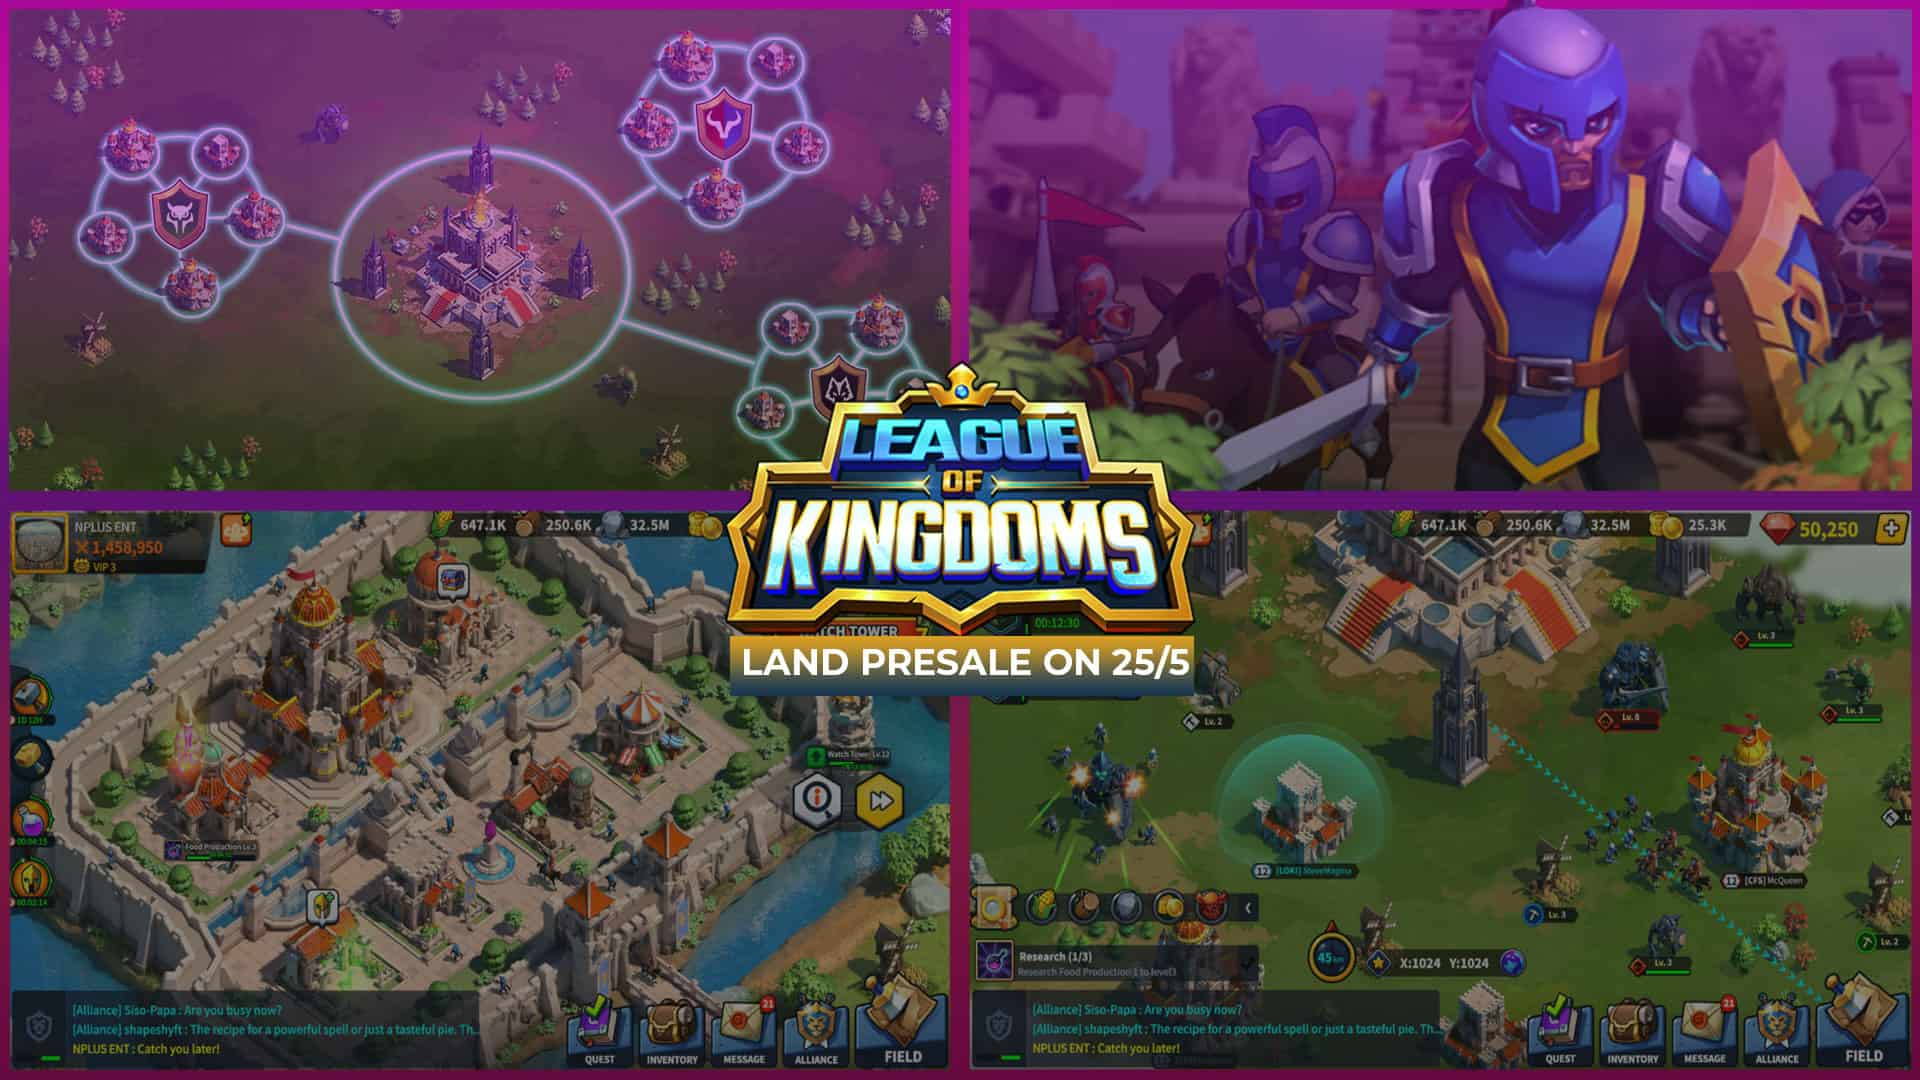 League of Kingdoms Presale